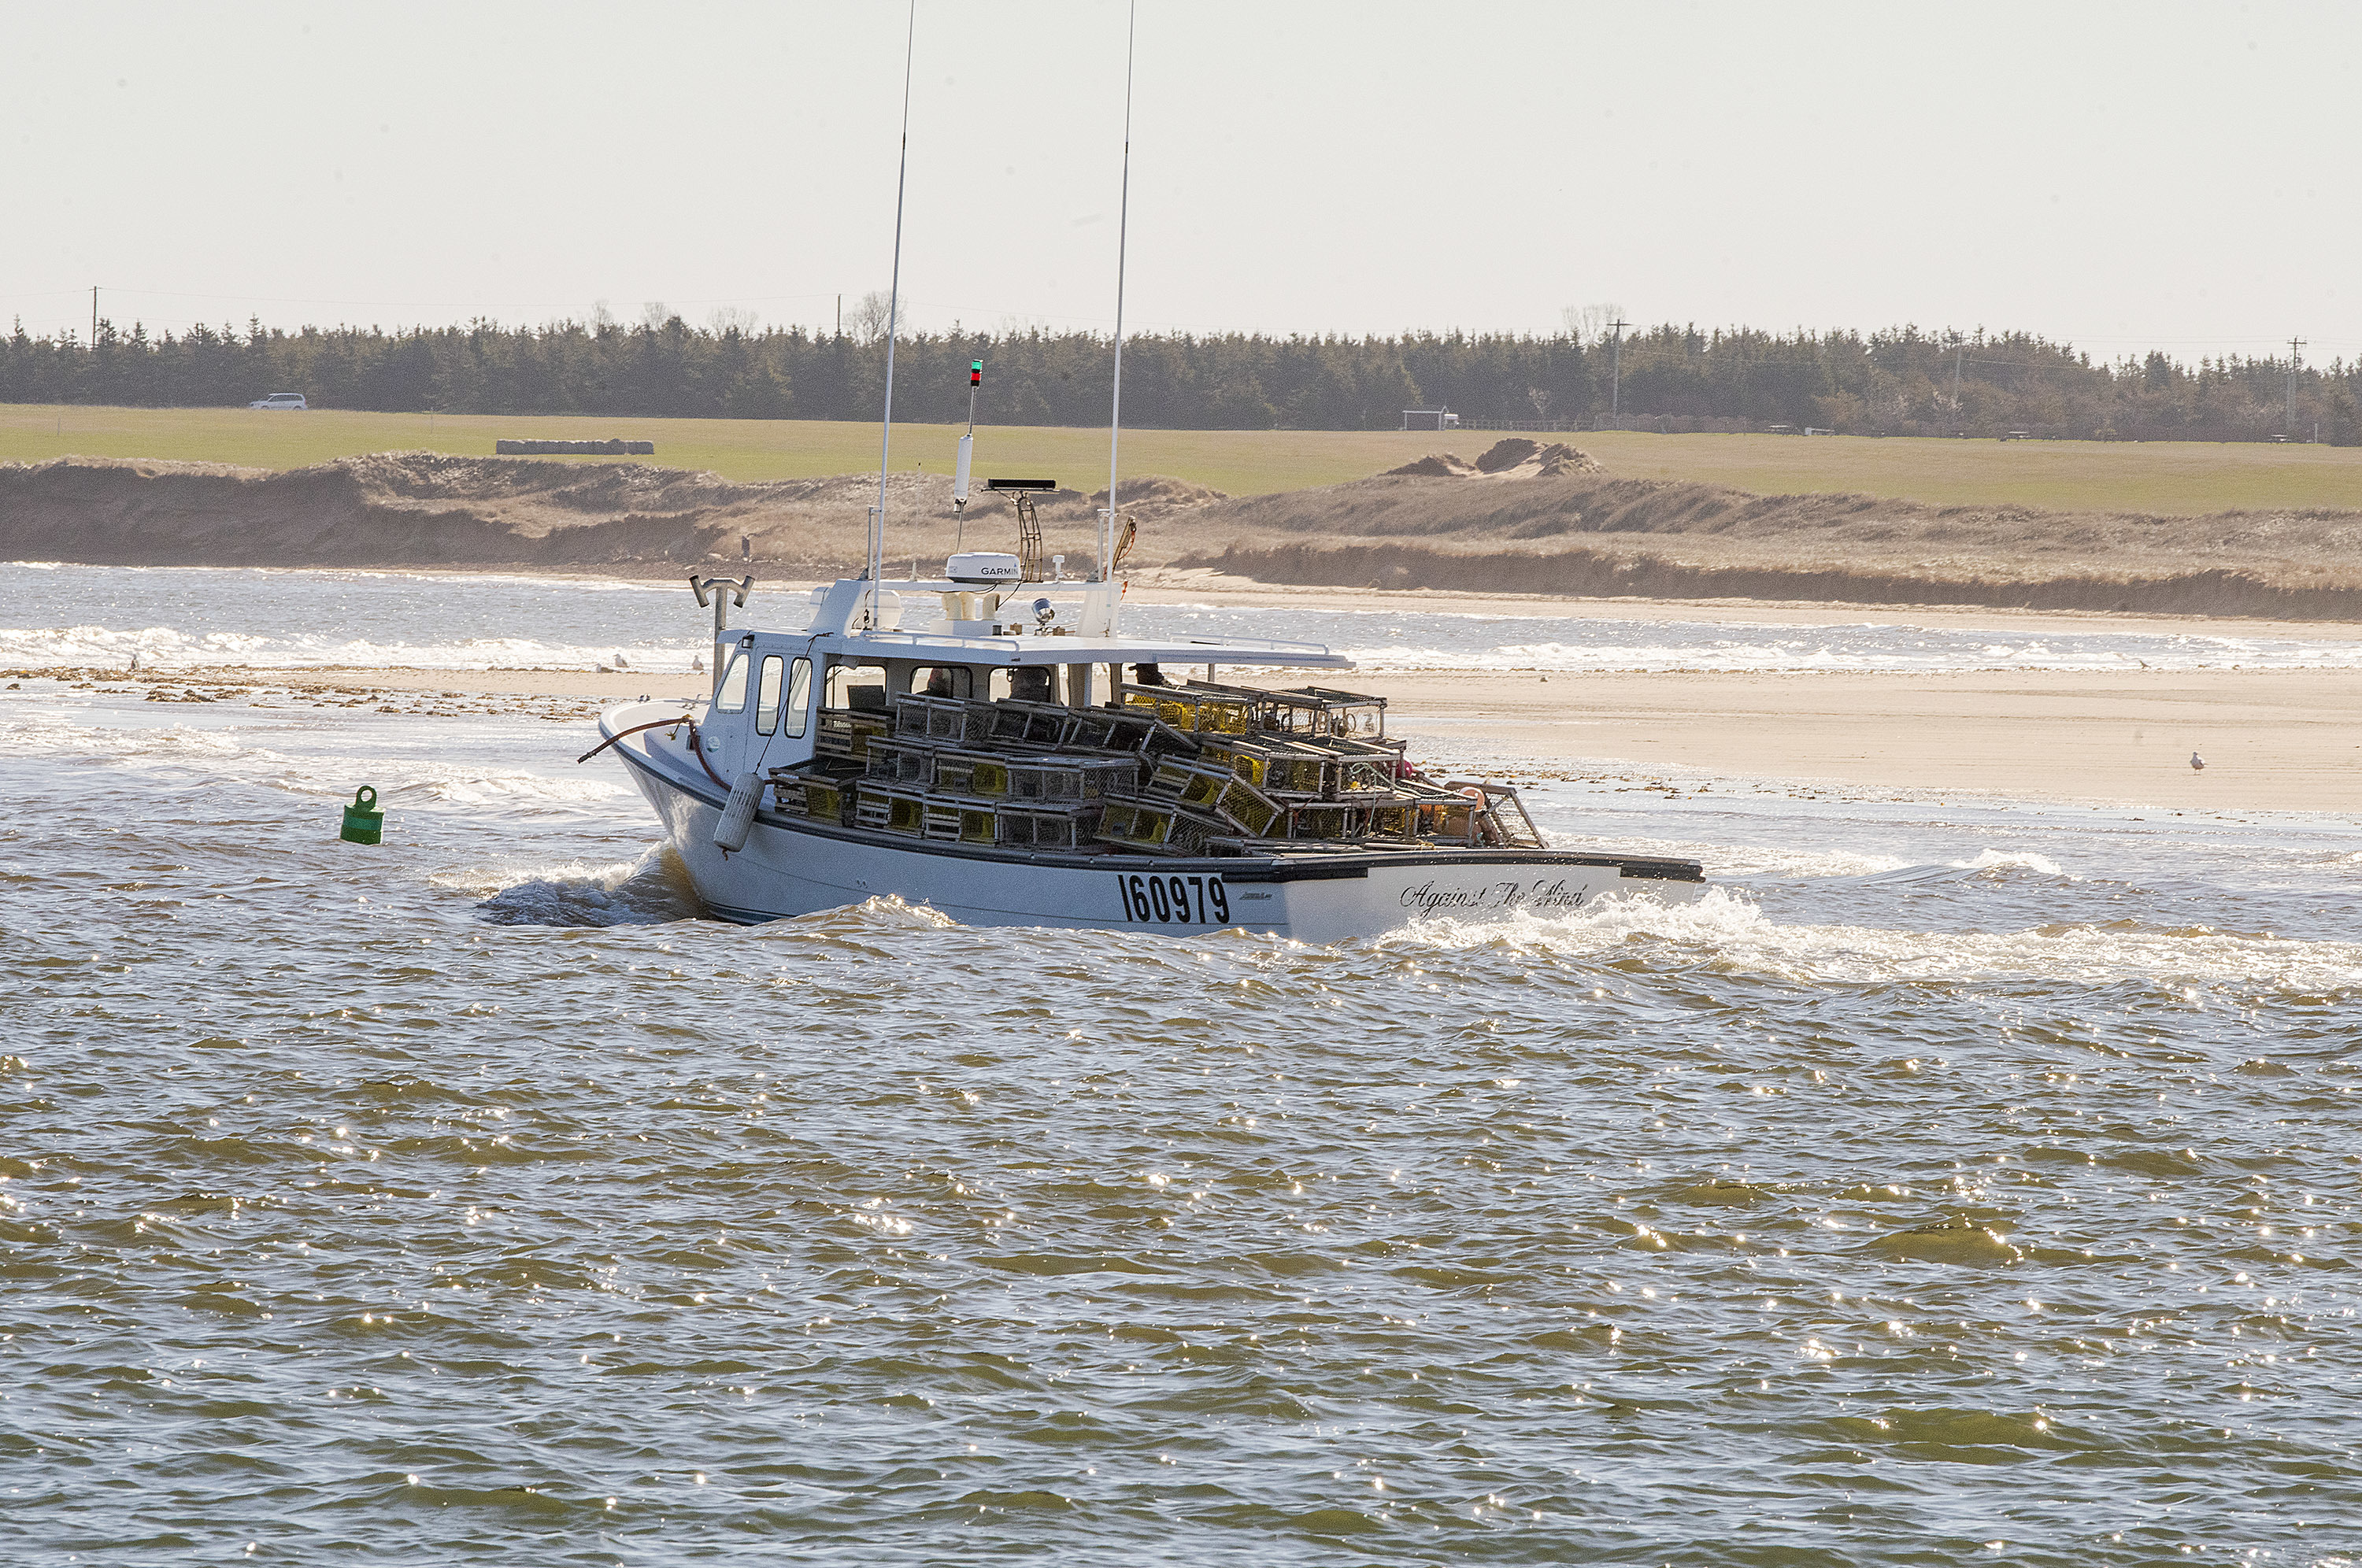 The captain of the Against the Wind takes his boat through the Malpeque Harbour channel Tuesday during the opening of the P.E.I. lobster season. (Brian McInnis/CBC)